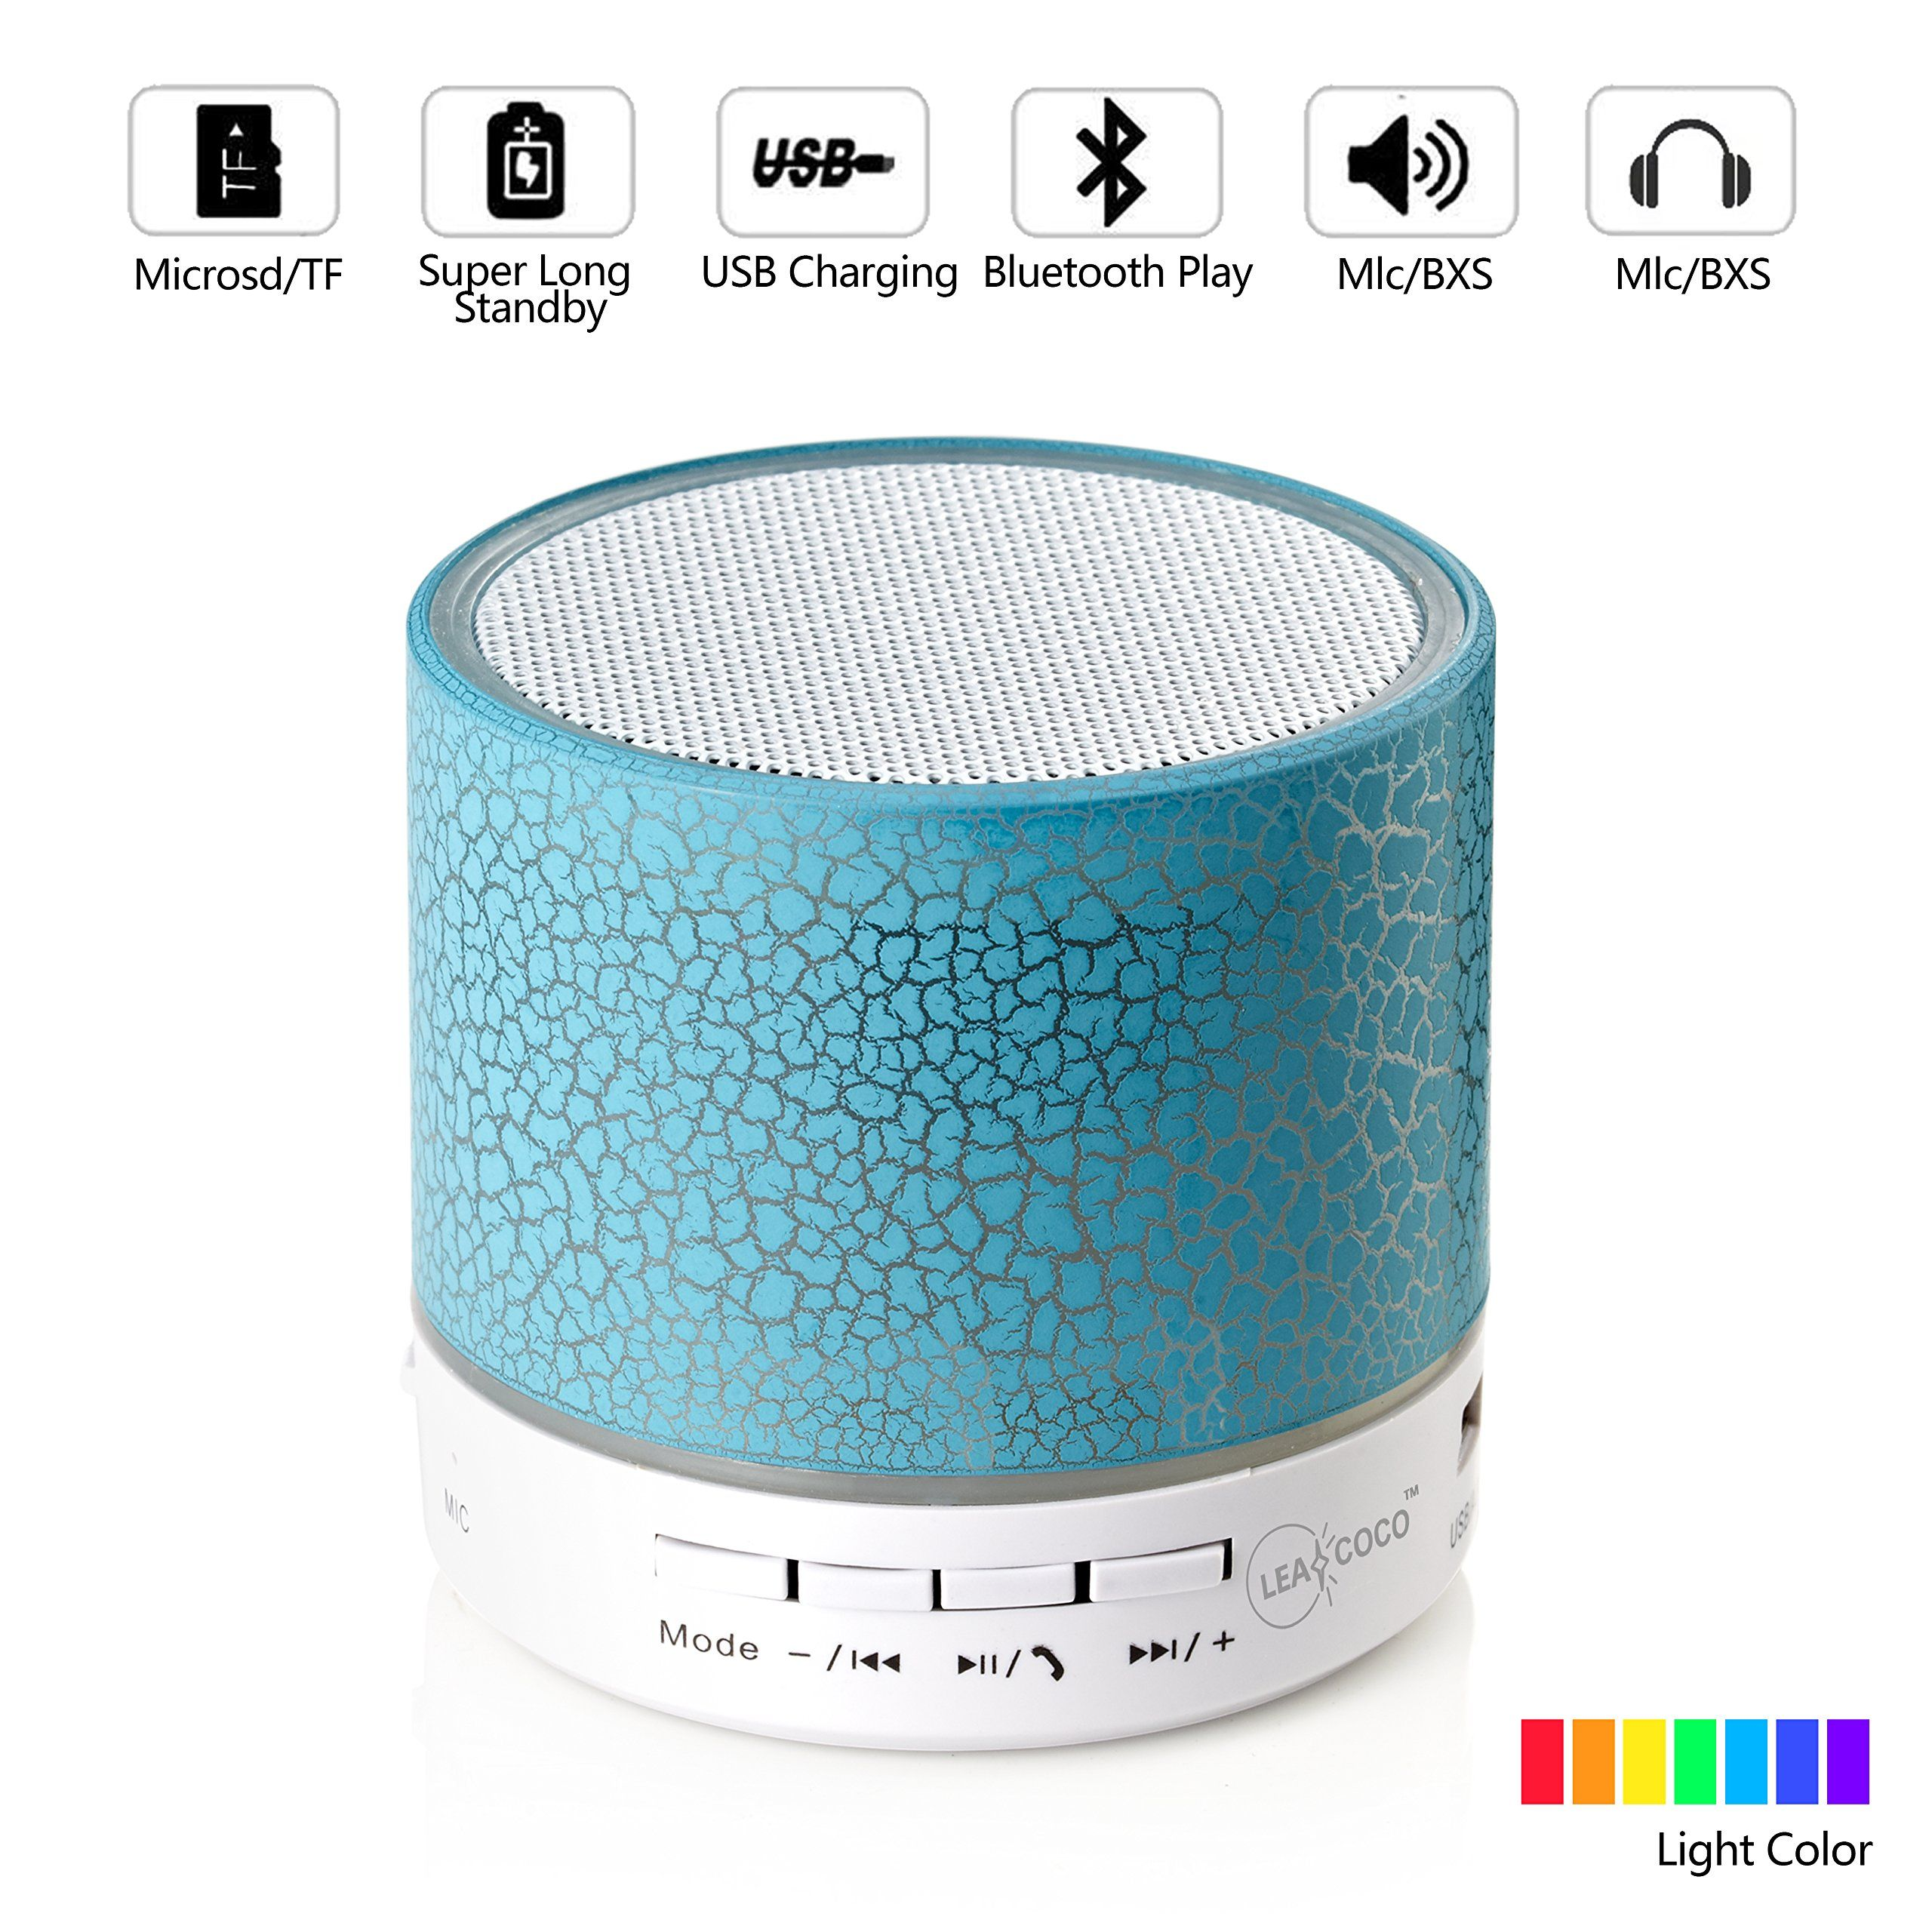 Leacoco Mini Wireless Portable Bluetooth Speaker With LED and Build ...